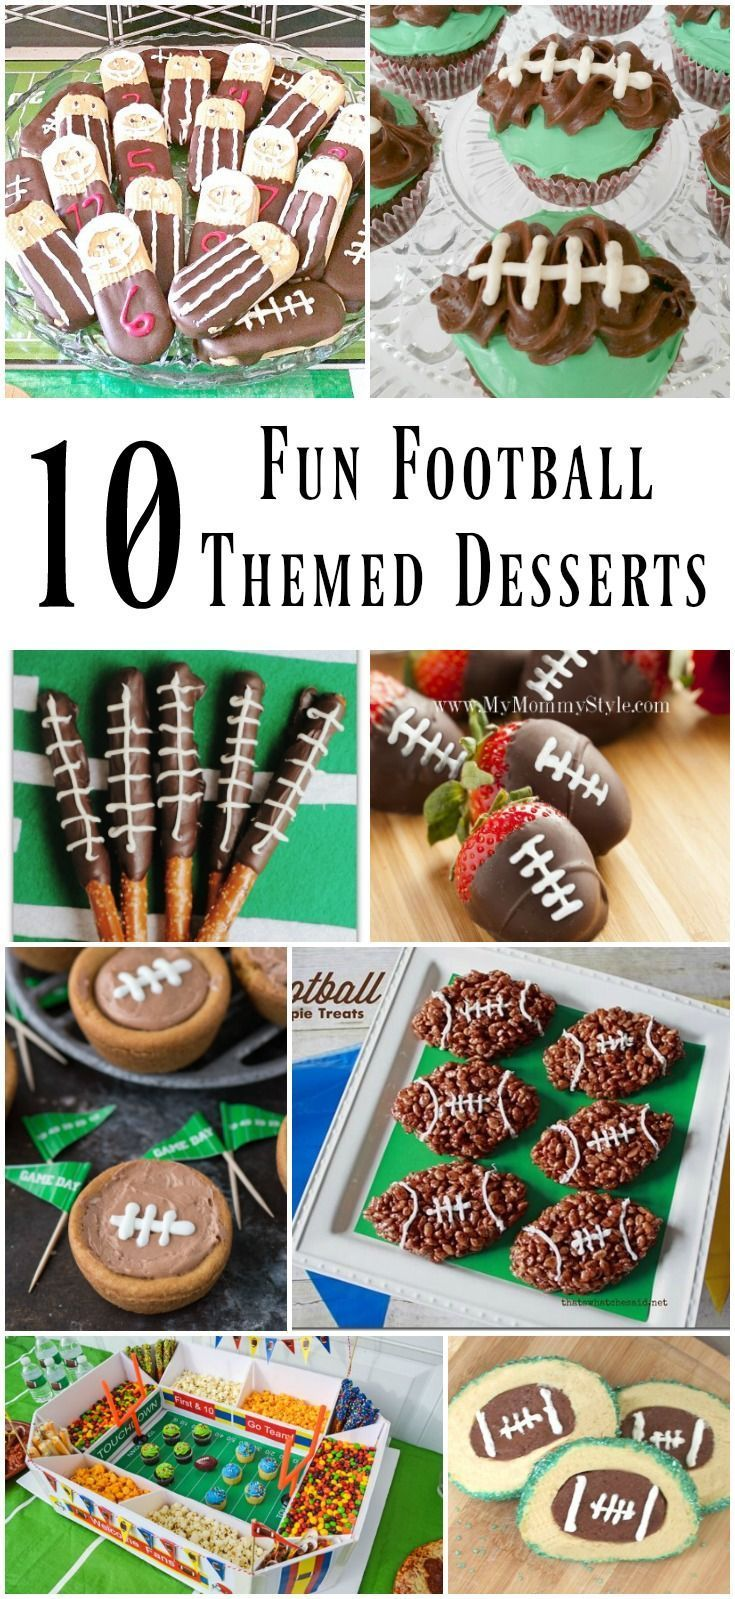 10 Fun Football Themed Game Day Desserts - Cupcakes, Brownies, Pretzels, and More!